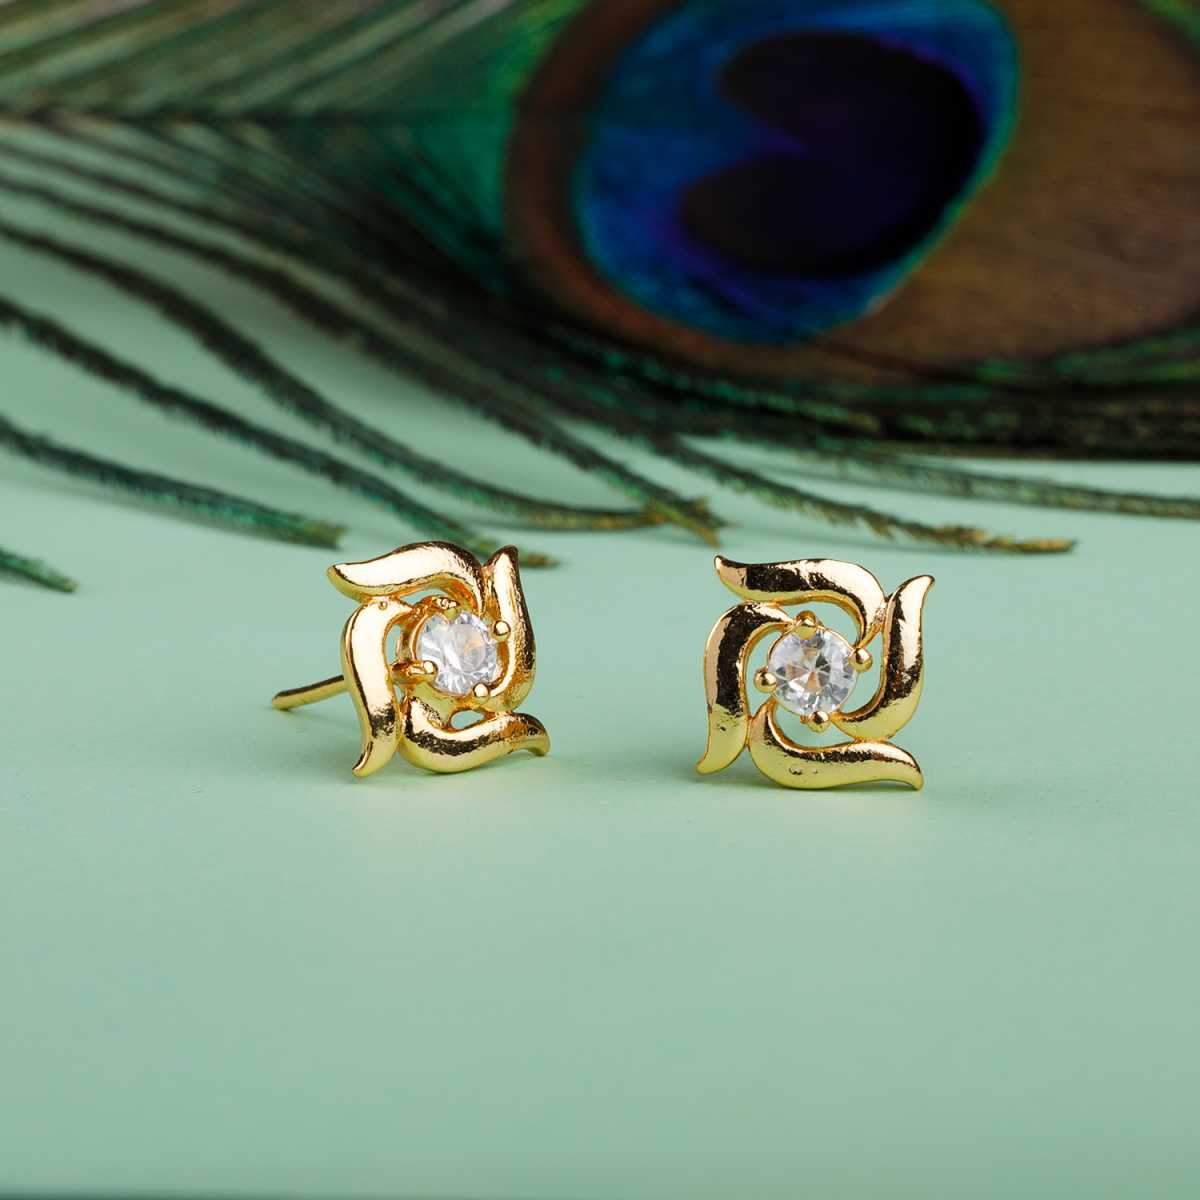 Silver Shine Attractive Gold Superb Polished Stud Earring With Diamond For Girl And Women